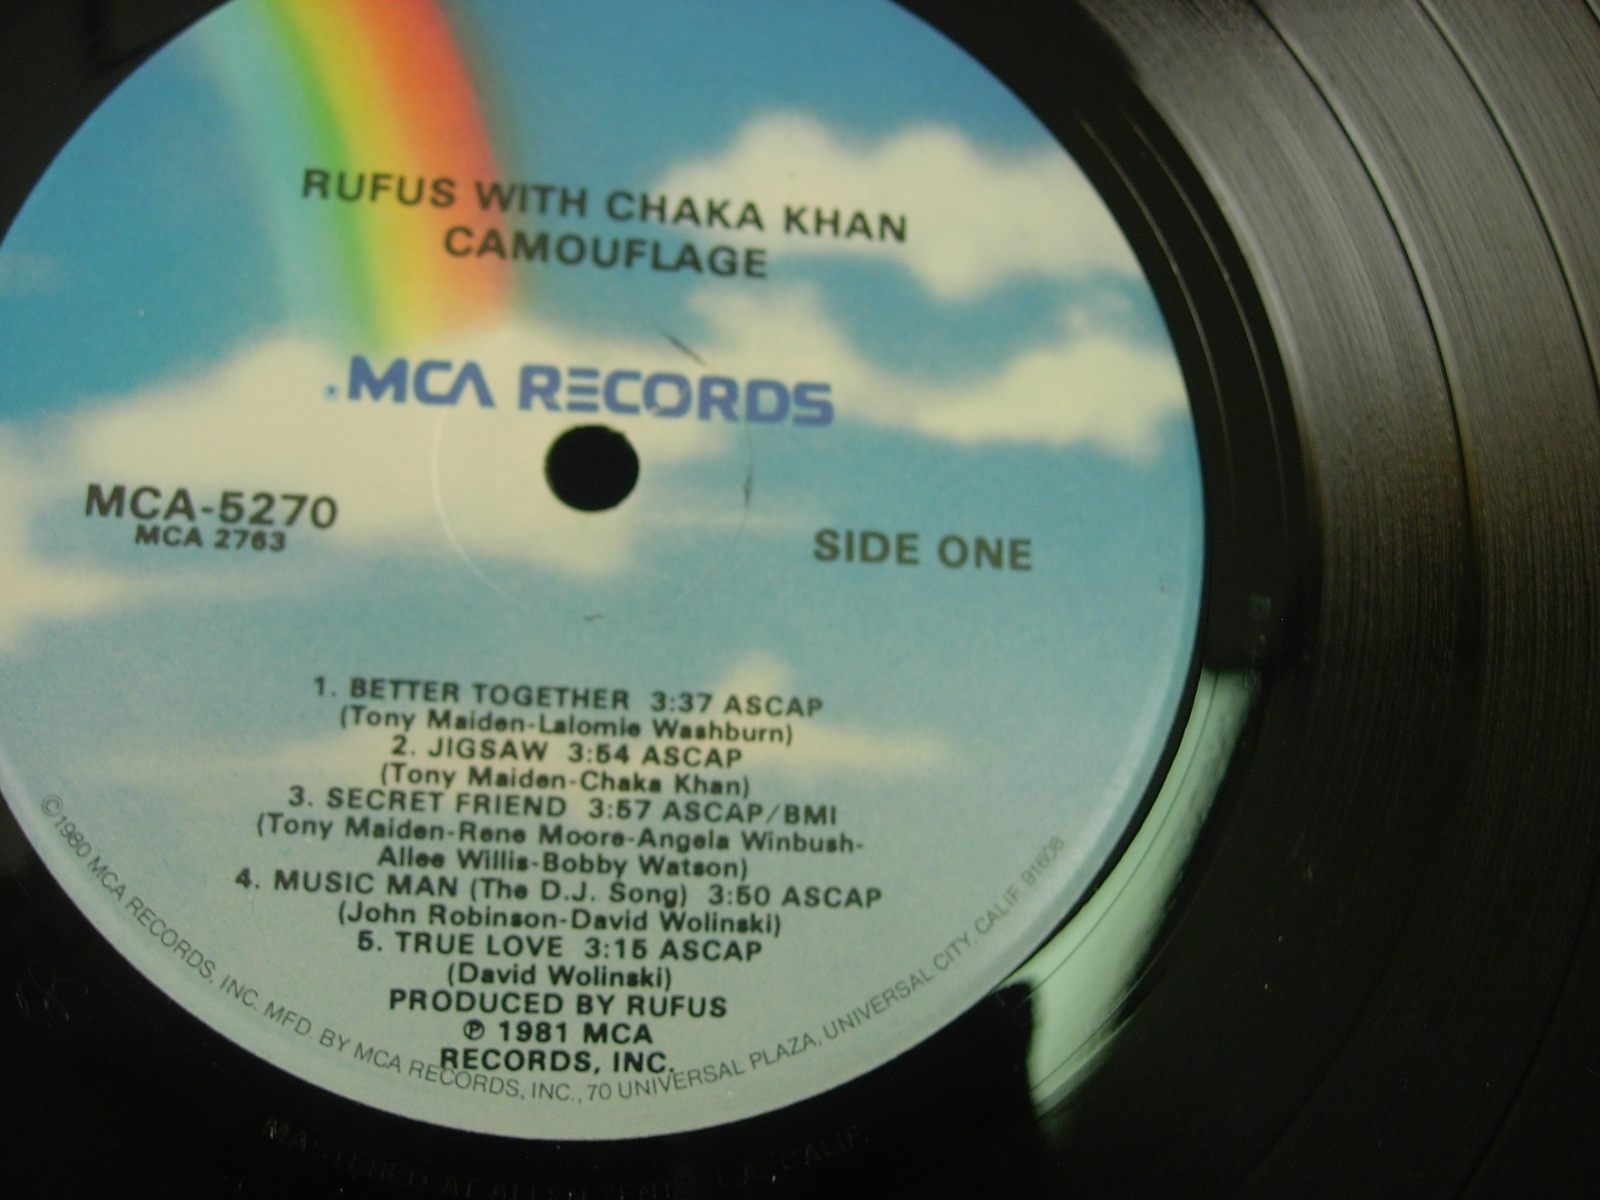 Rufus with Chaka Khan - Camouflage - MCA Records MCA-5270